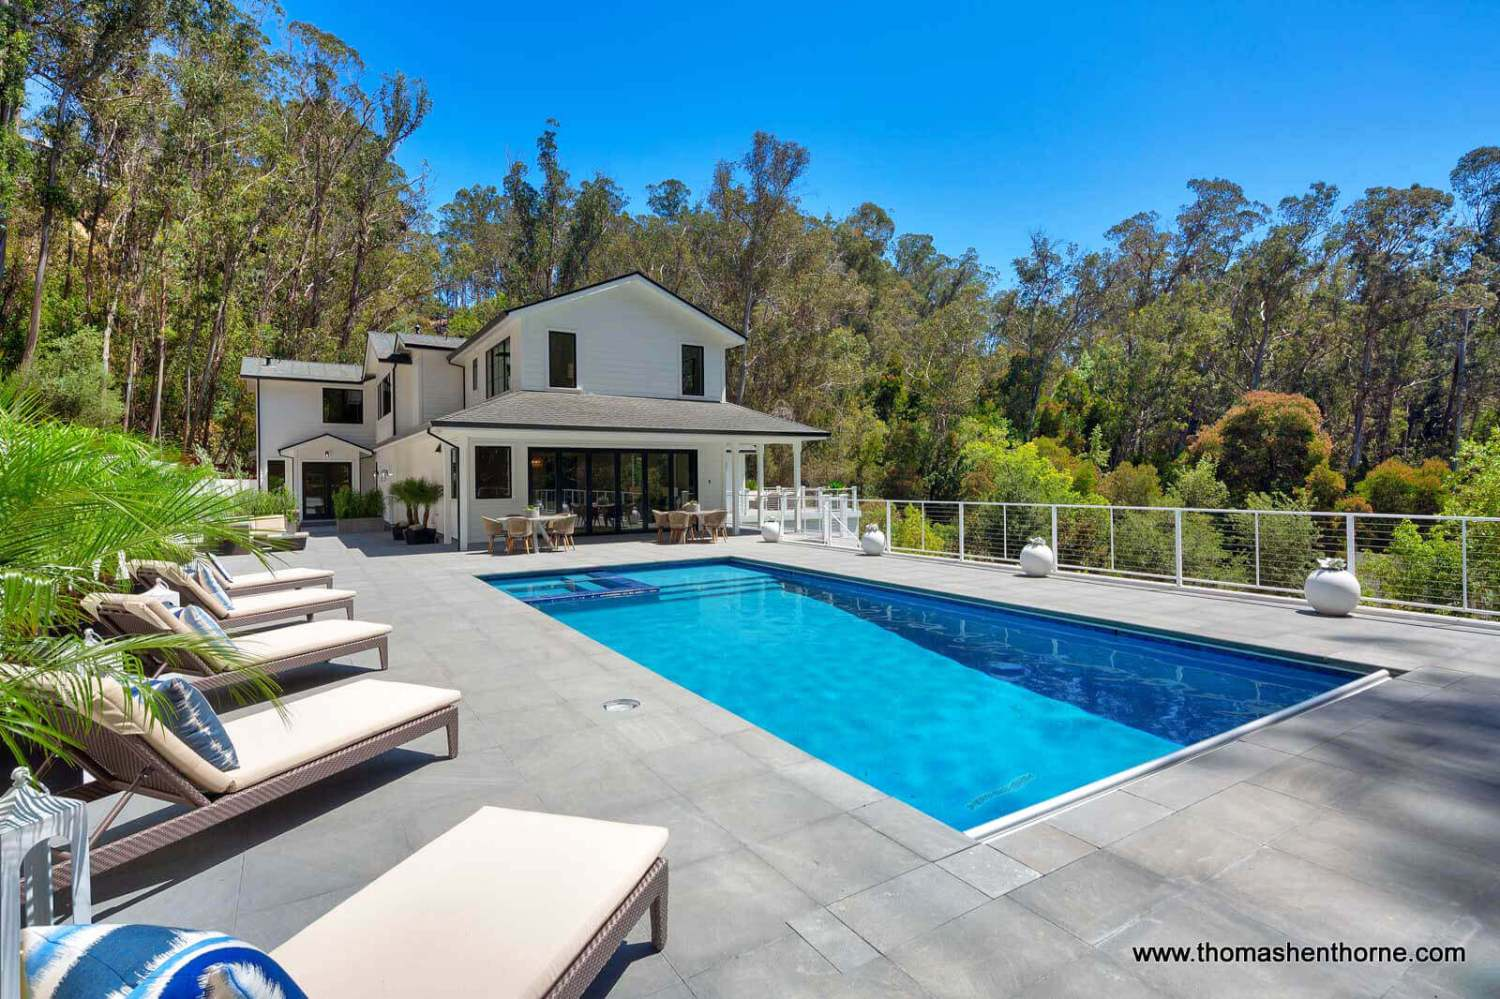 61 Gold Hill Grade in San Rafael, California pool in foreground and home in background